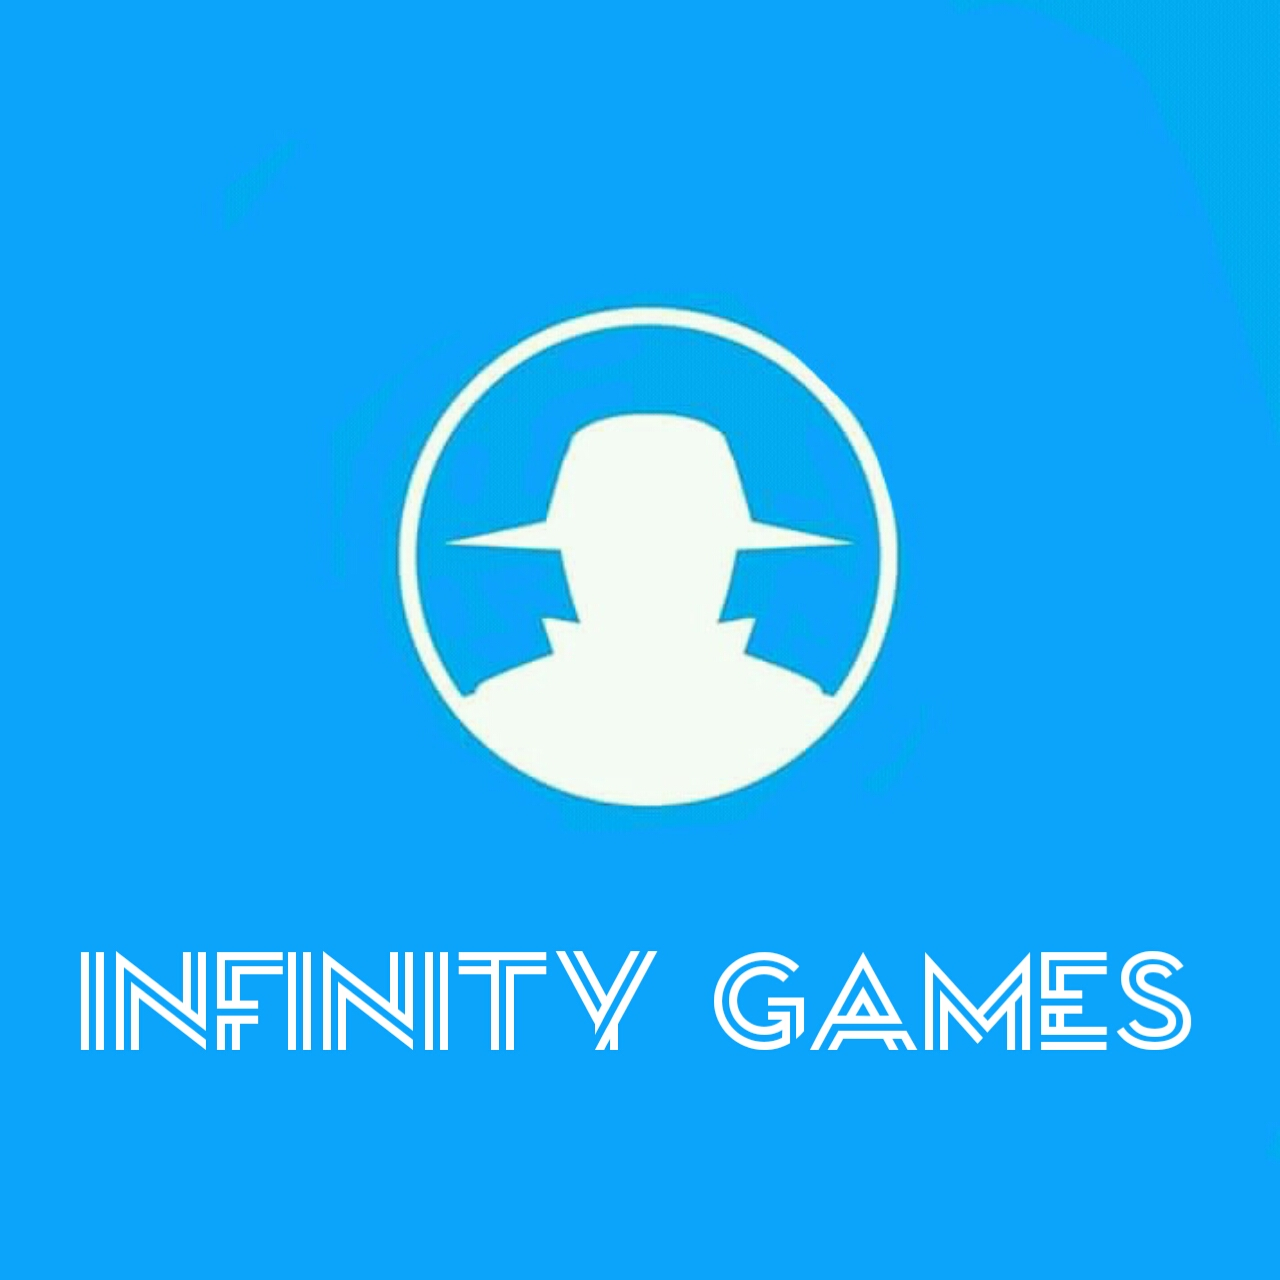 Infinity Games